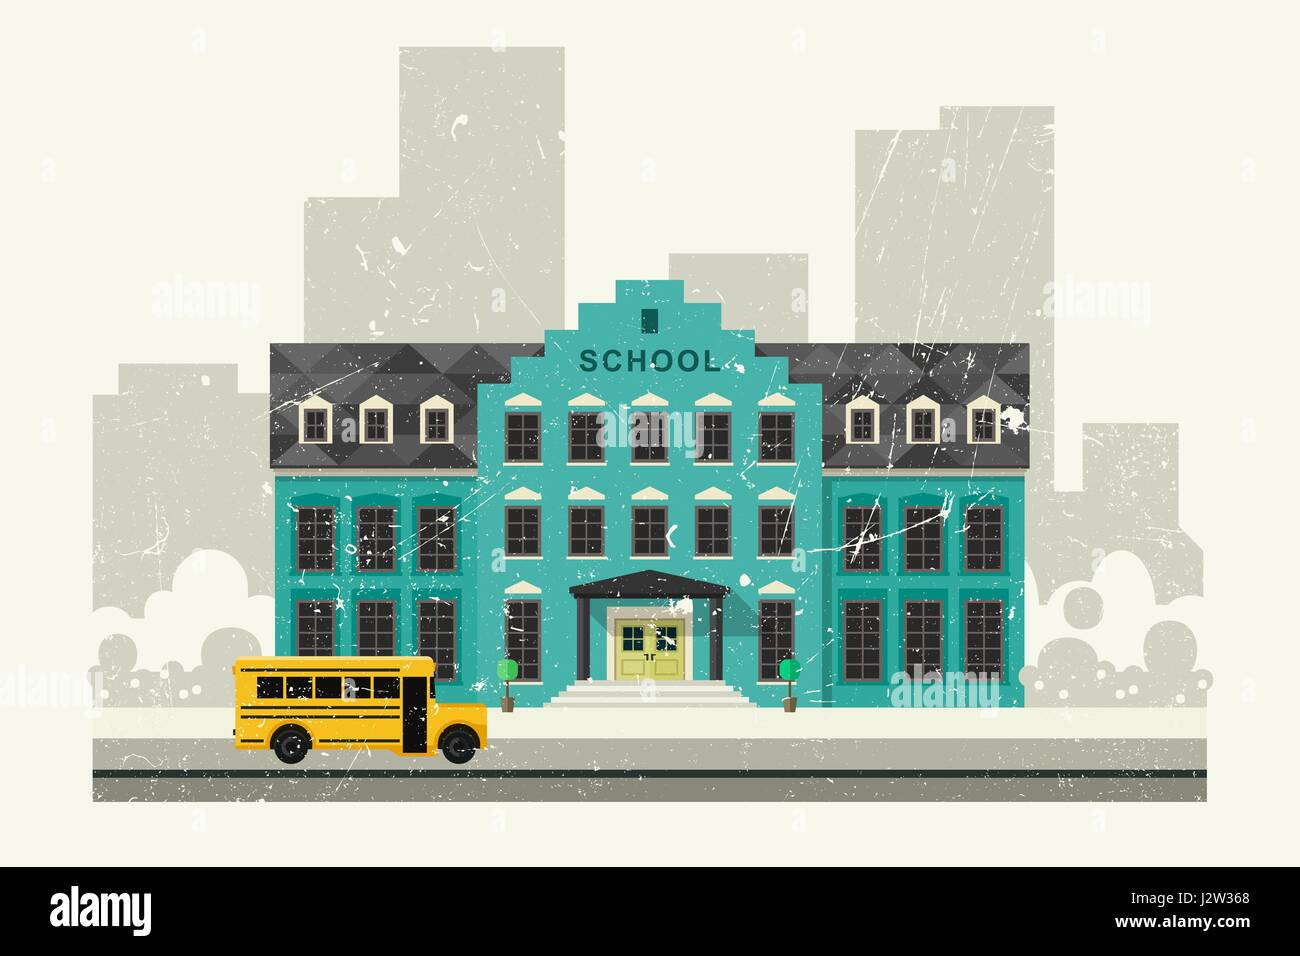 School and yellow bus - Stock Image